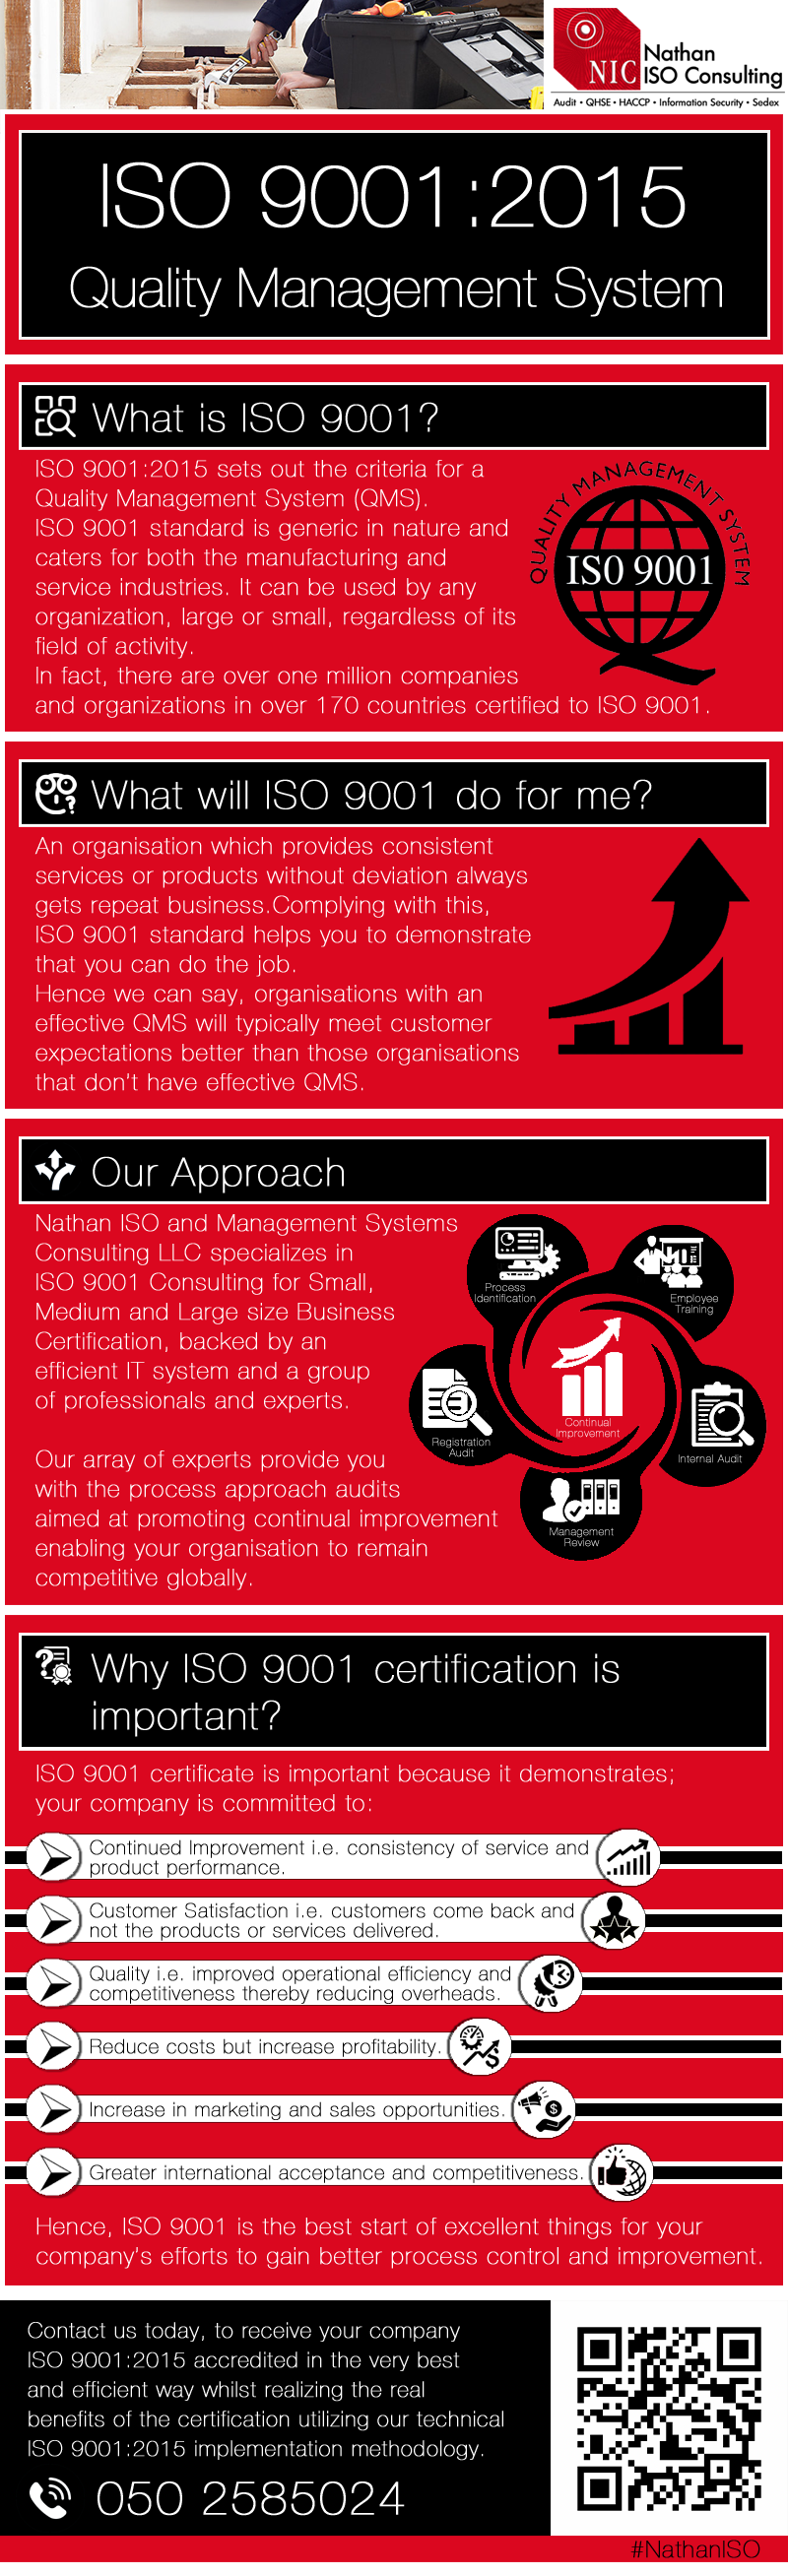 iso 9001 standard 2015 download